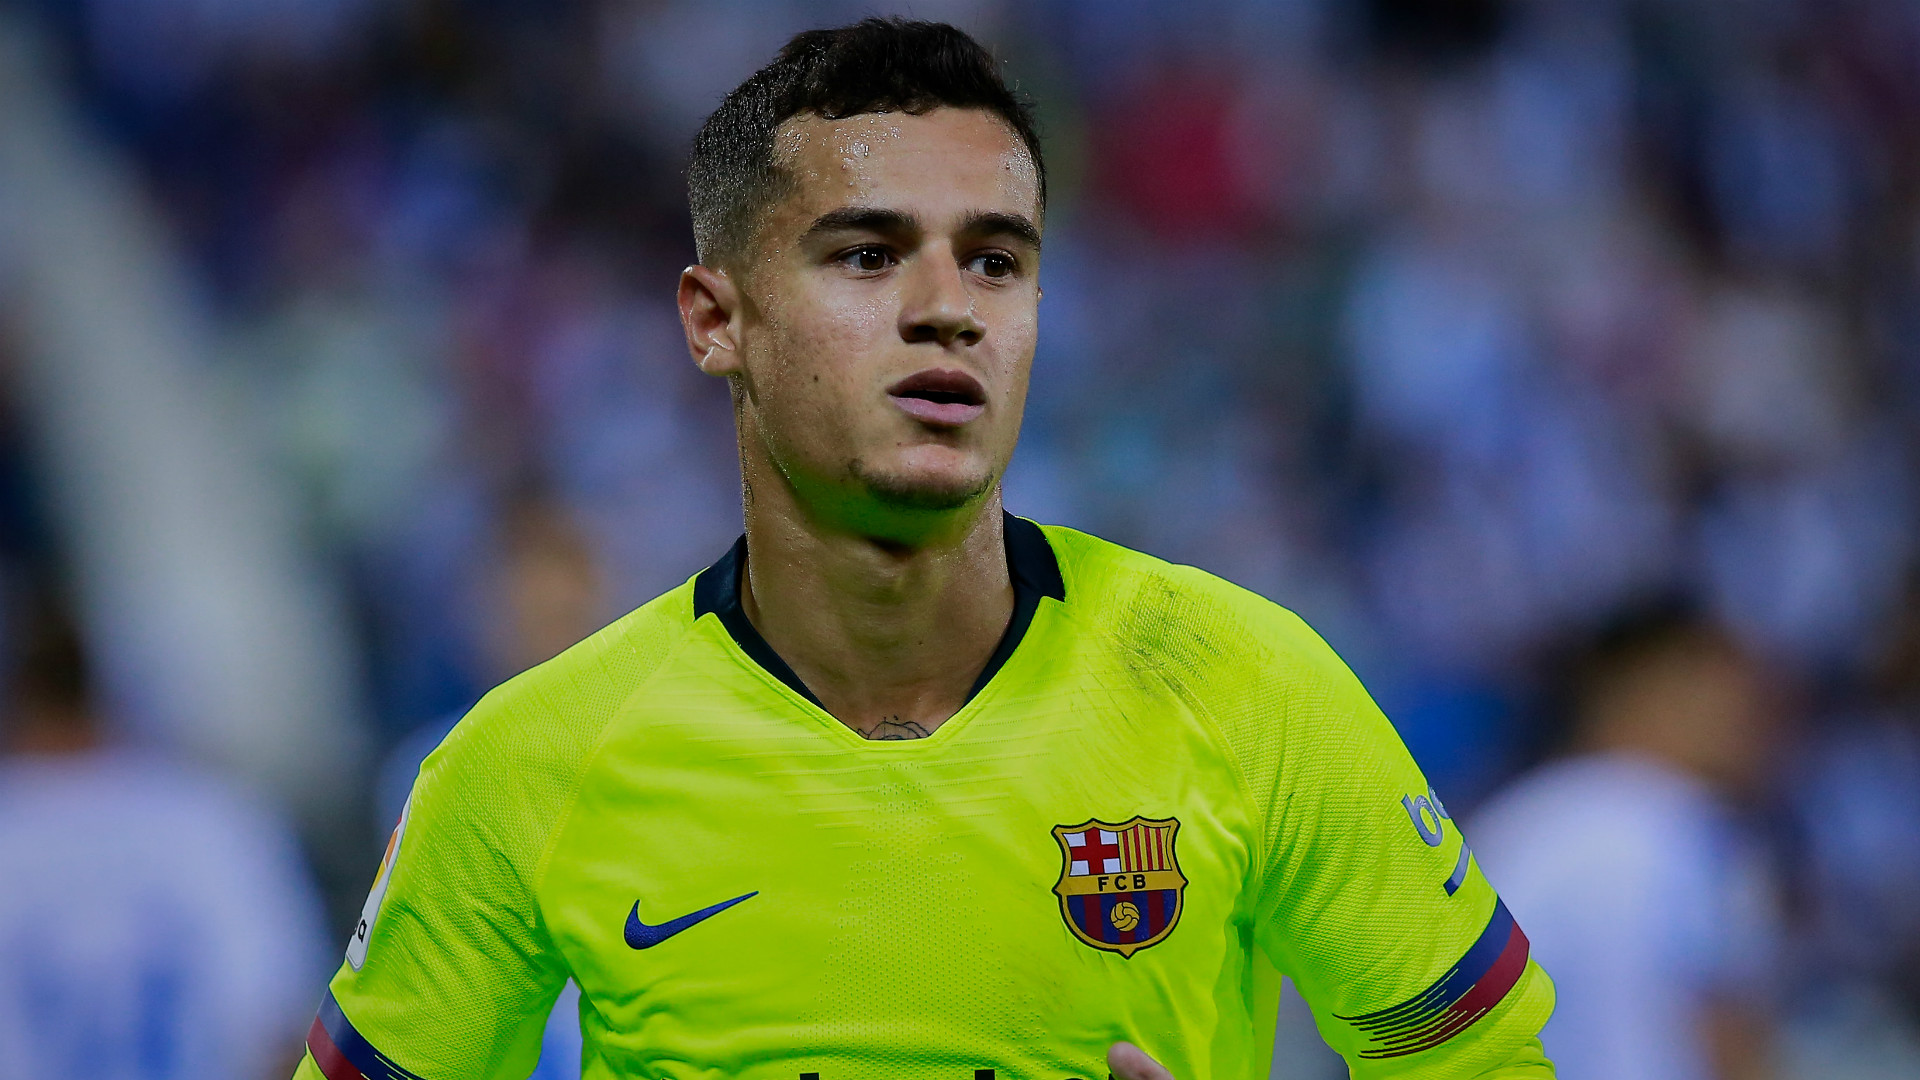 Liverpool could not afford Coutinho - Klopp - Sports Leo